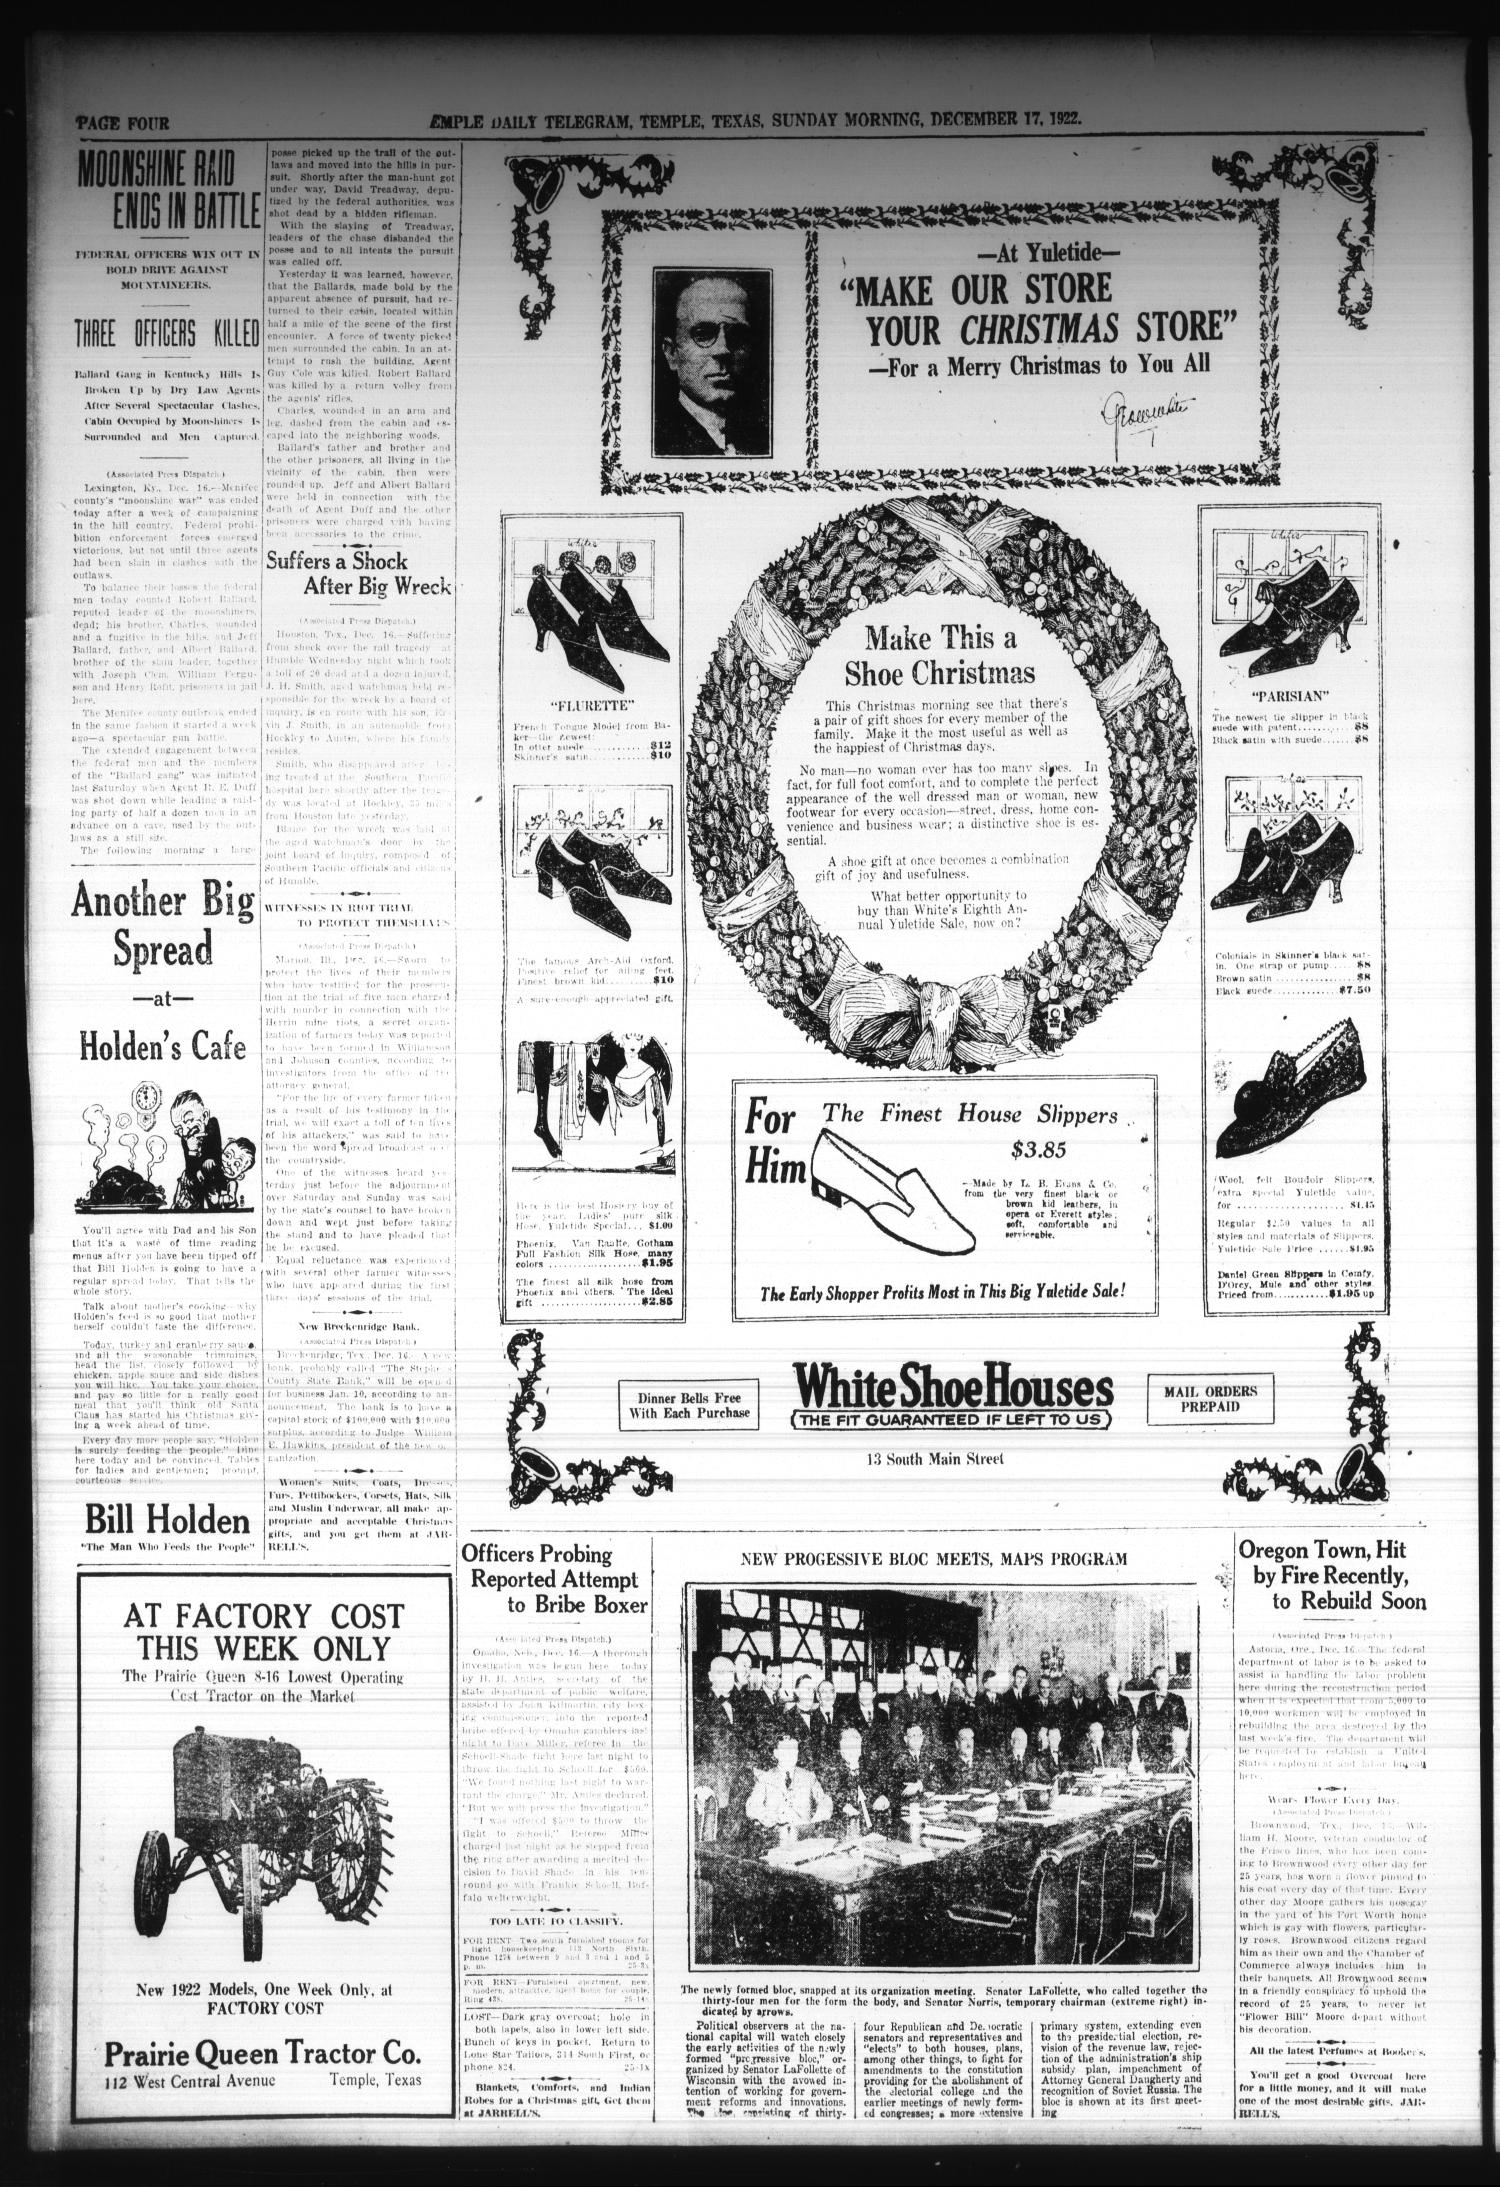 Temple Daily Telegram (Temple, Tex.), Vol. 16, No. 25, Ed. 1 Sunday, December 17, 1922                                                                                                      [Sequence #]: 4 of 28